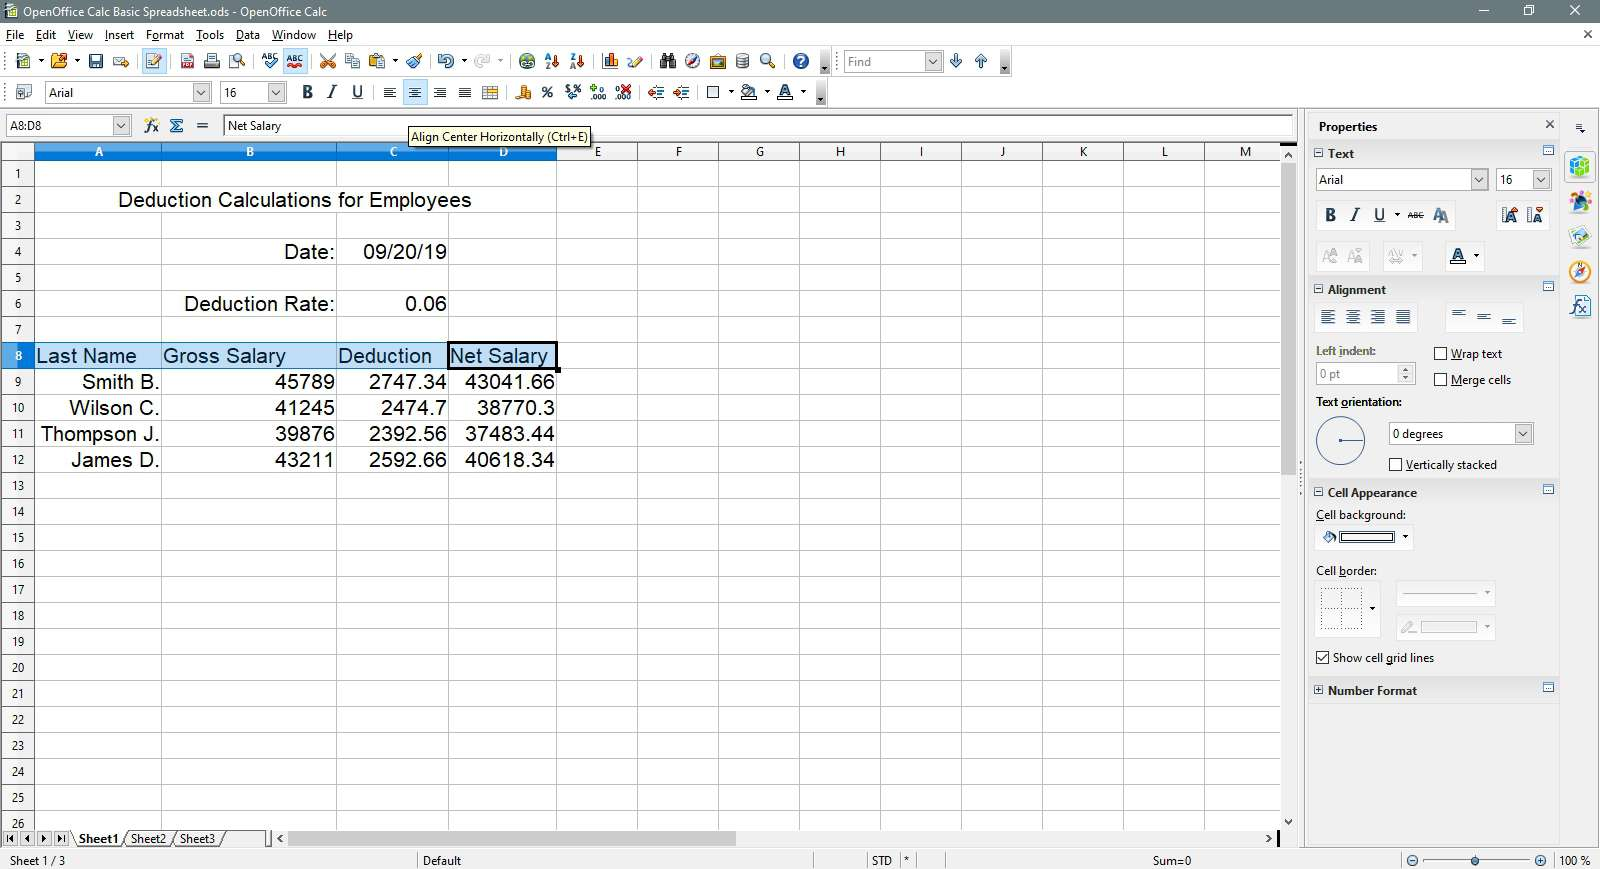 The header row is being aligned to the right in OpenOffice Calc.